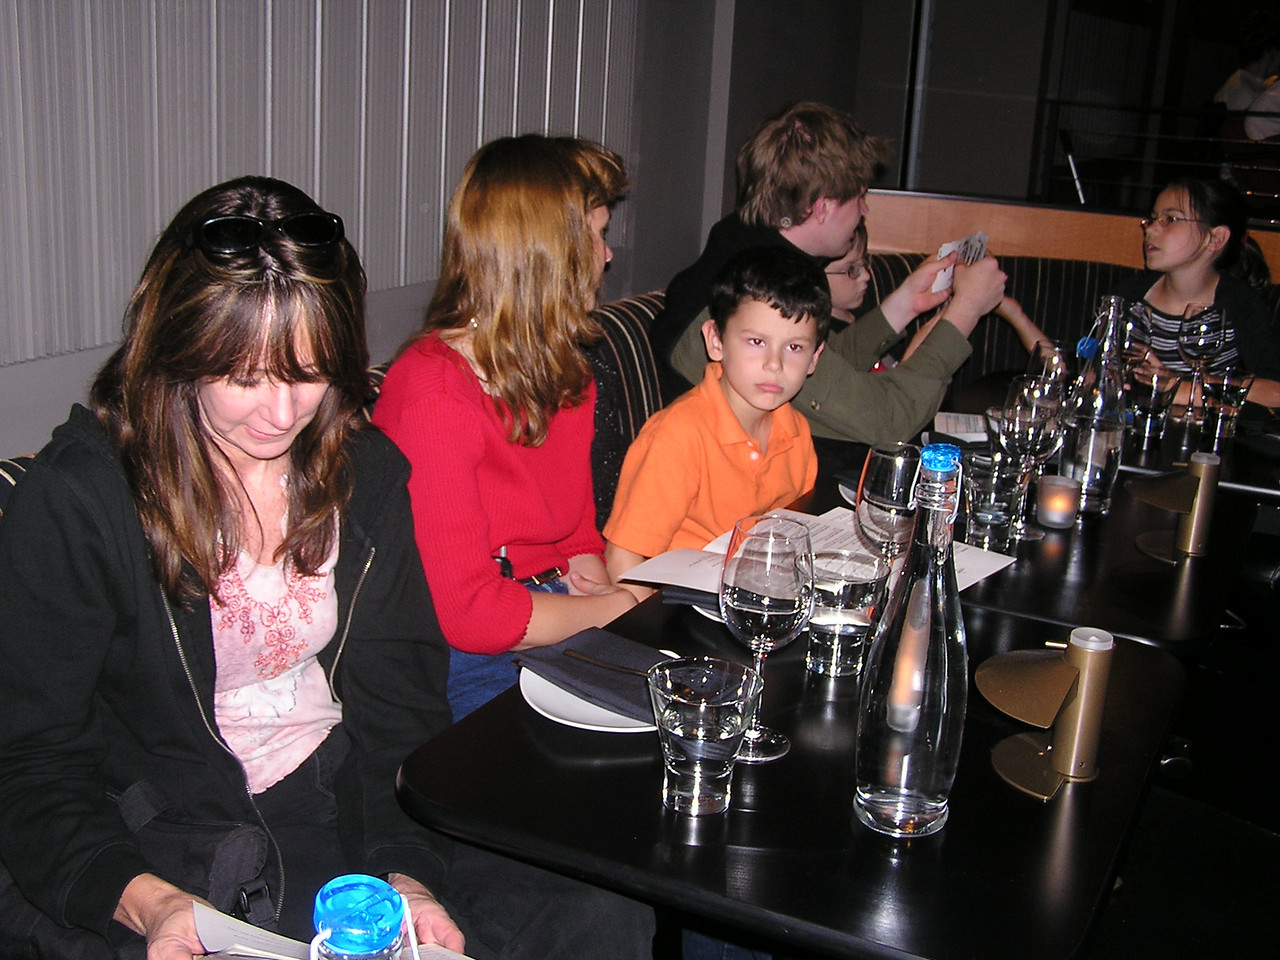 (L to R) Mary's sisters Susan and Elaine, Elaine's son Alan, Nathan, Parker and Isabelle.